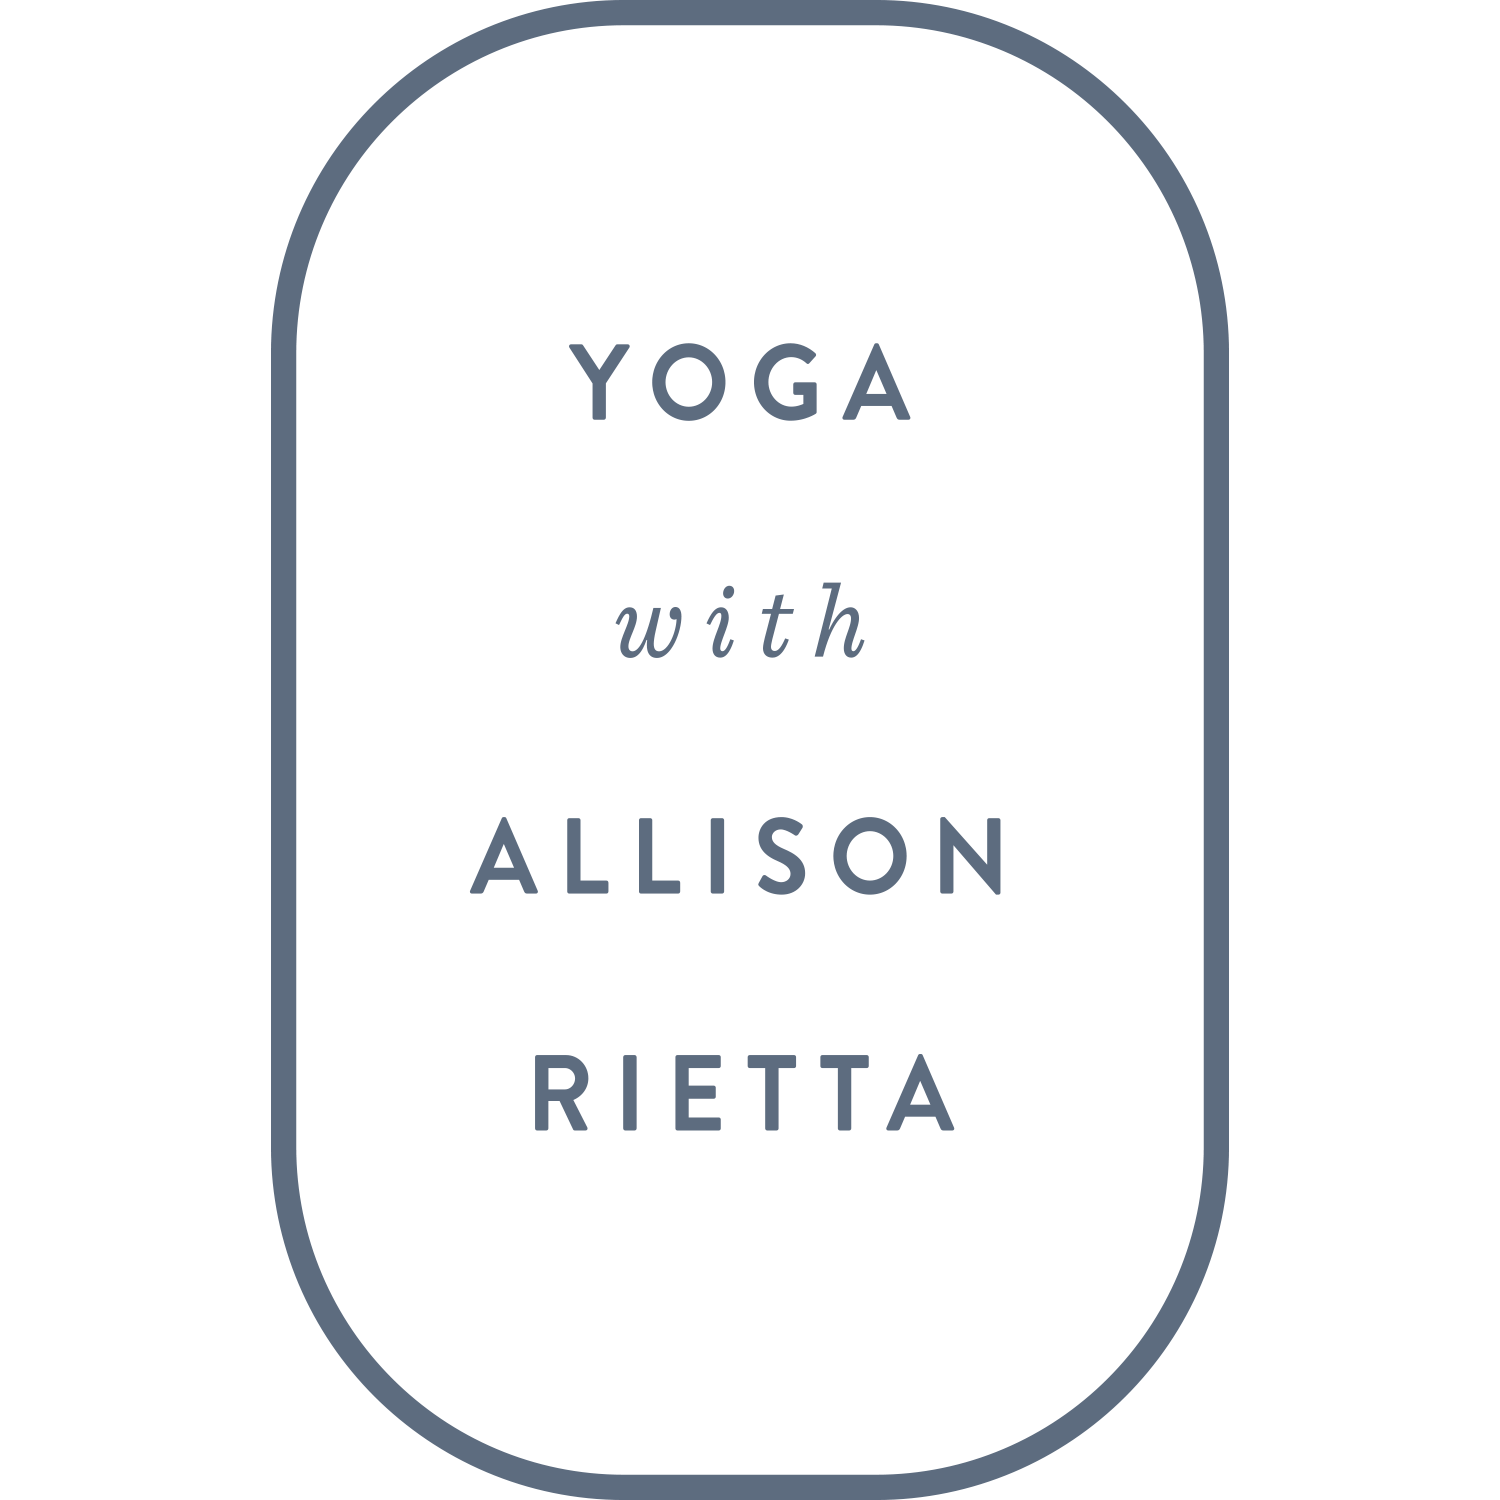 Yoga with Allison Rietta